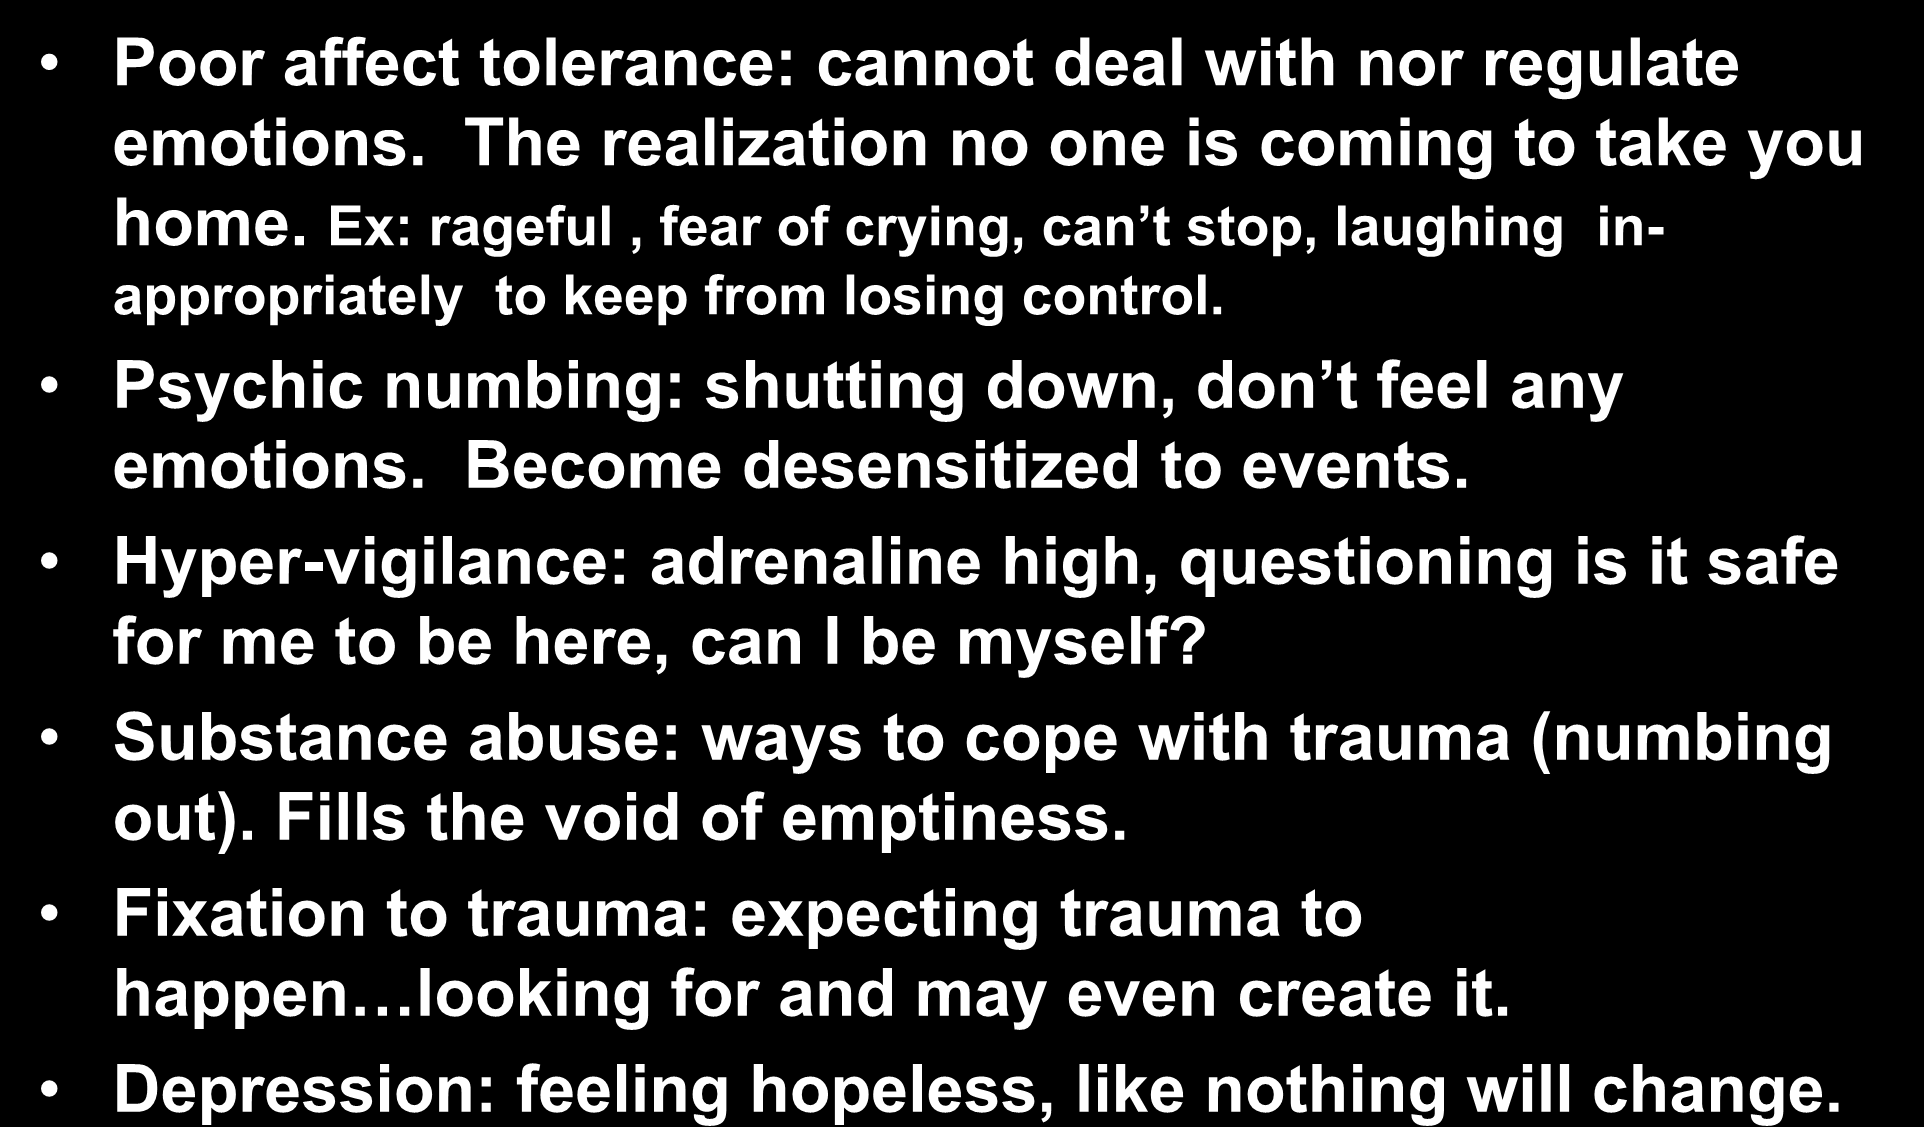 How does one deal with trauma, what are the coping skills just to survive? Poor affect tolerance: cannot deal with nor regulate emotions. The realization no one is coming to take you home.